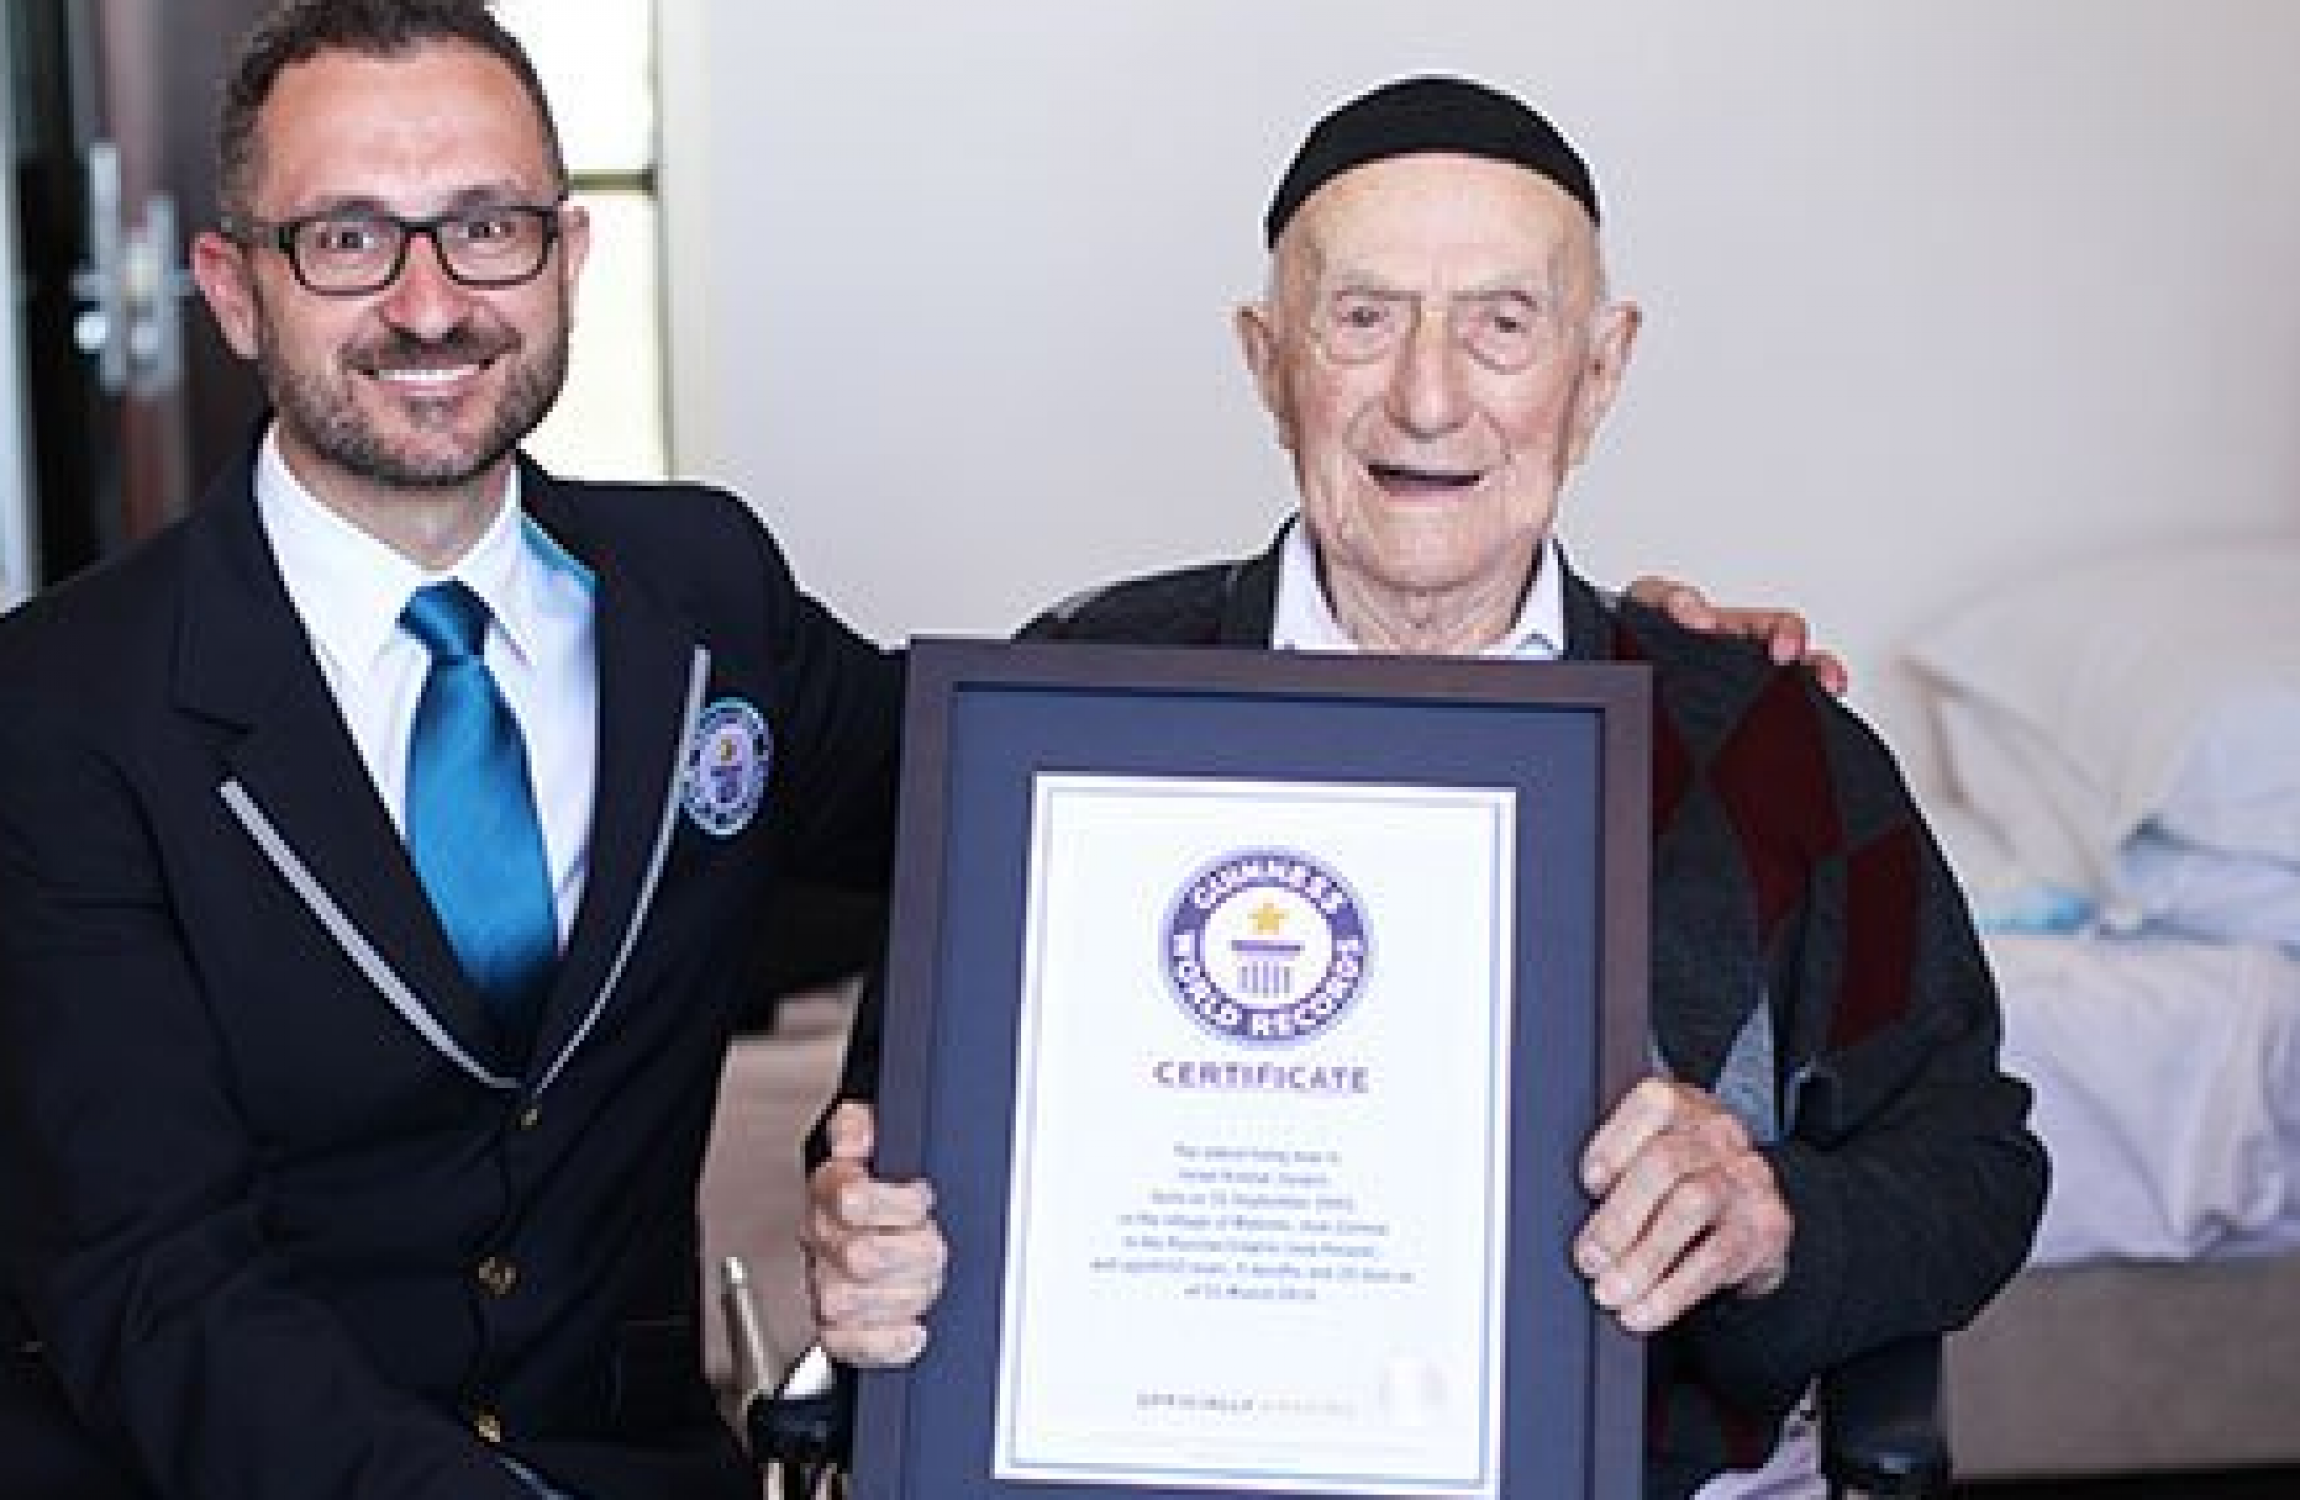 World's oldest man dies in Israel aged 113